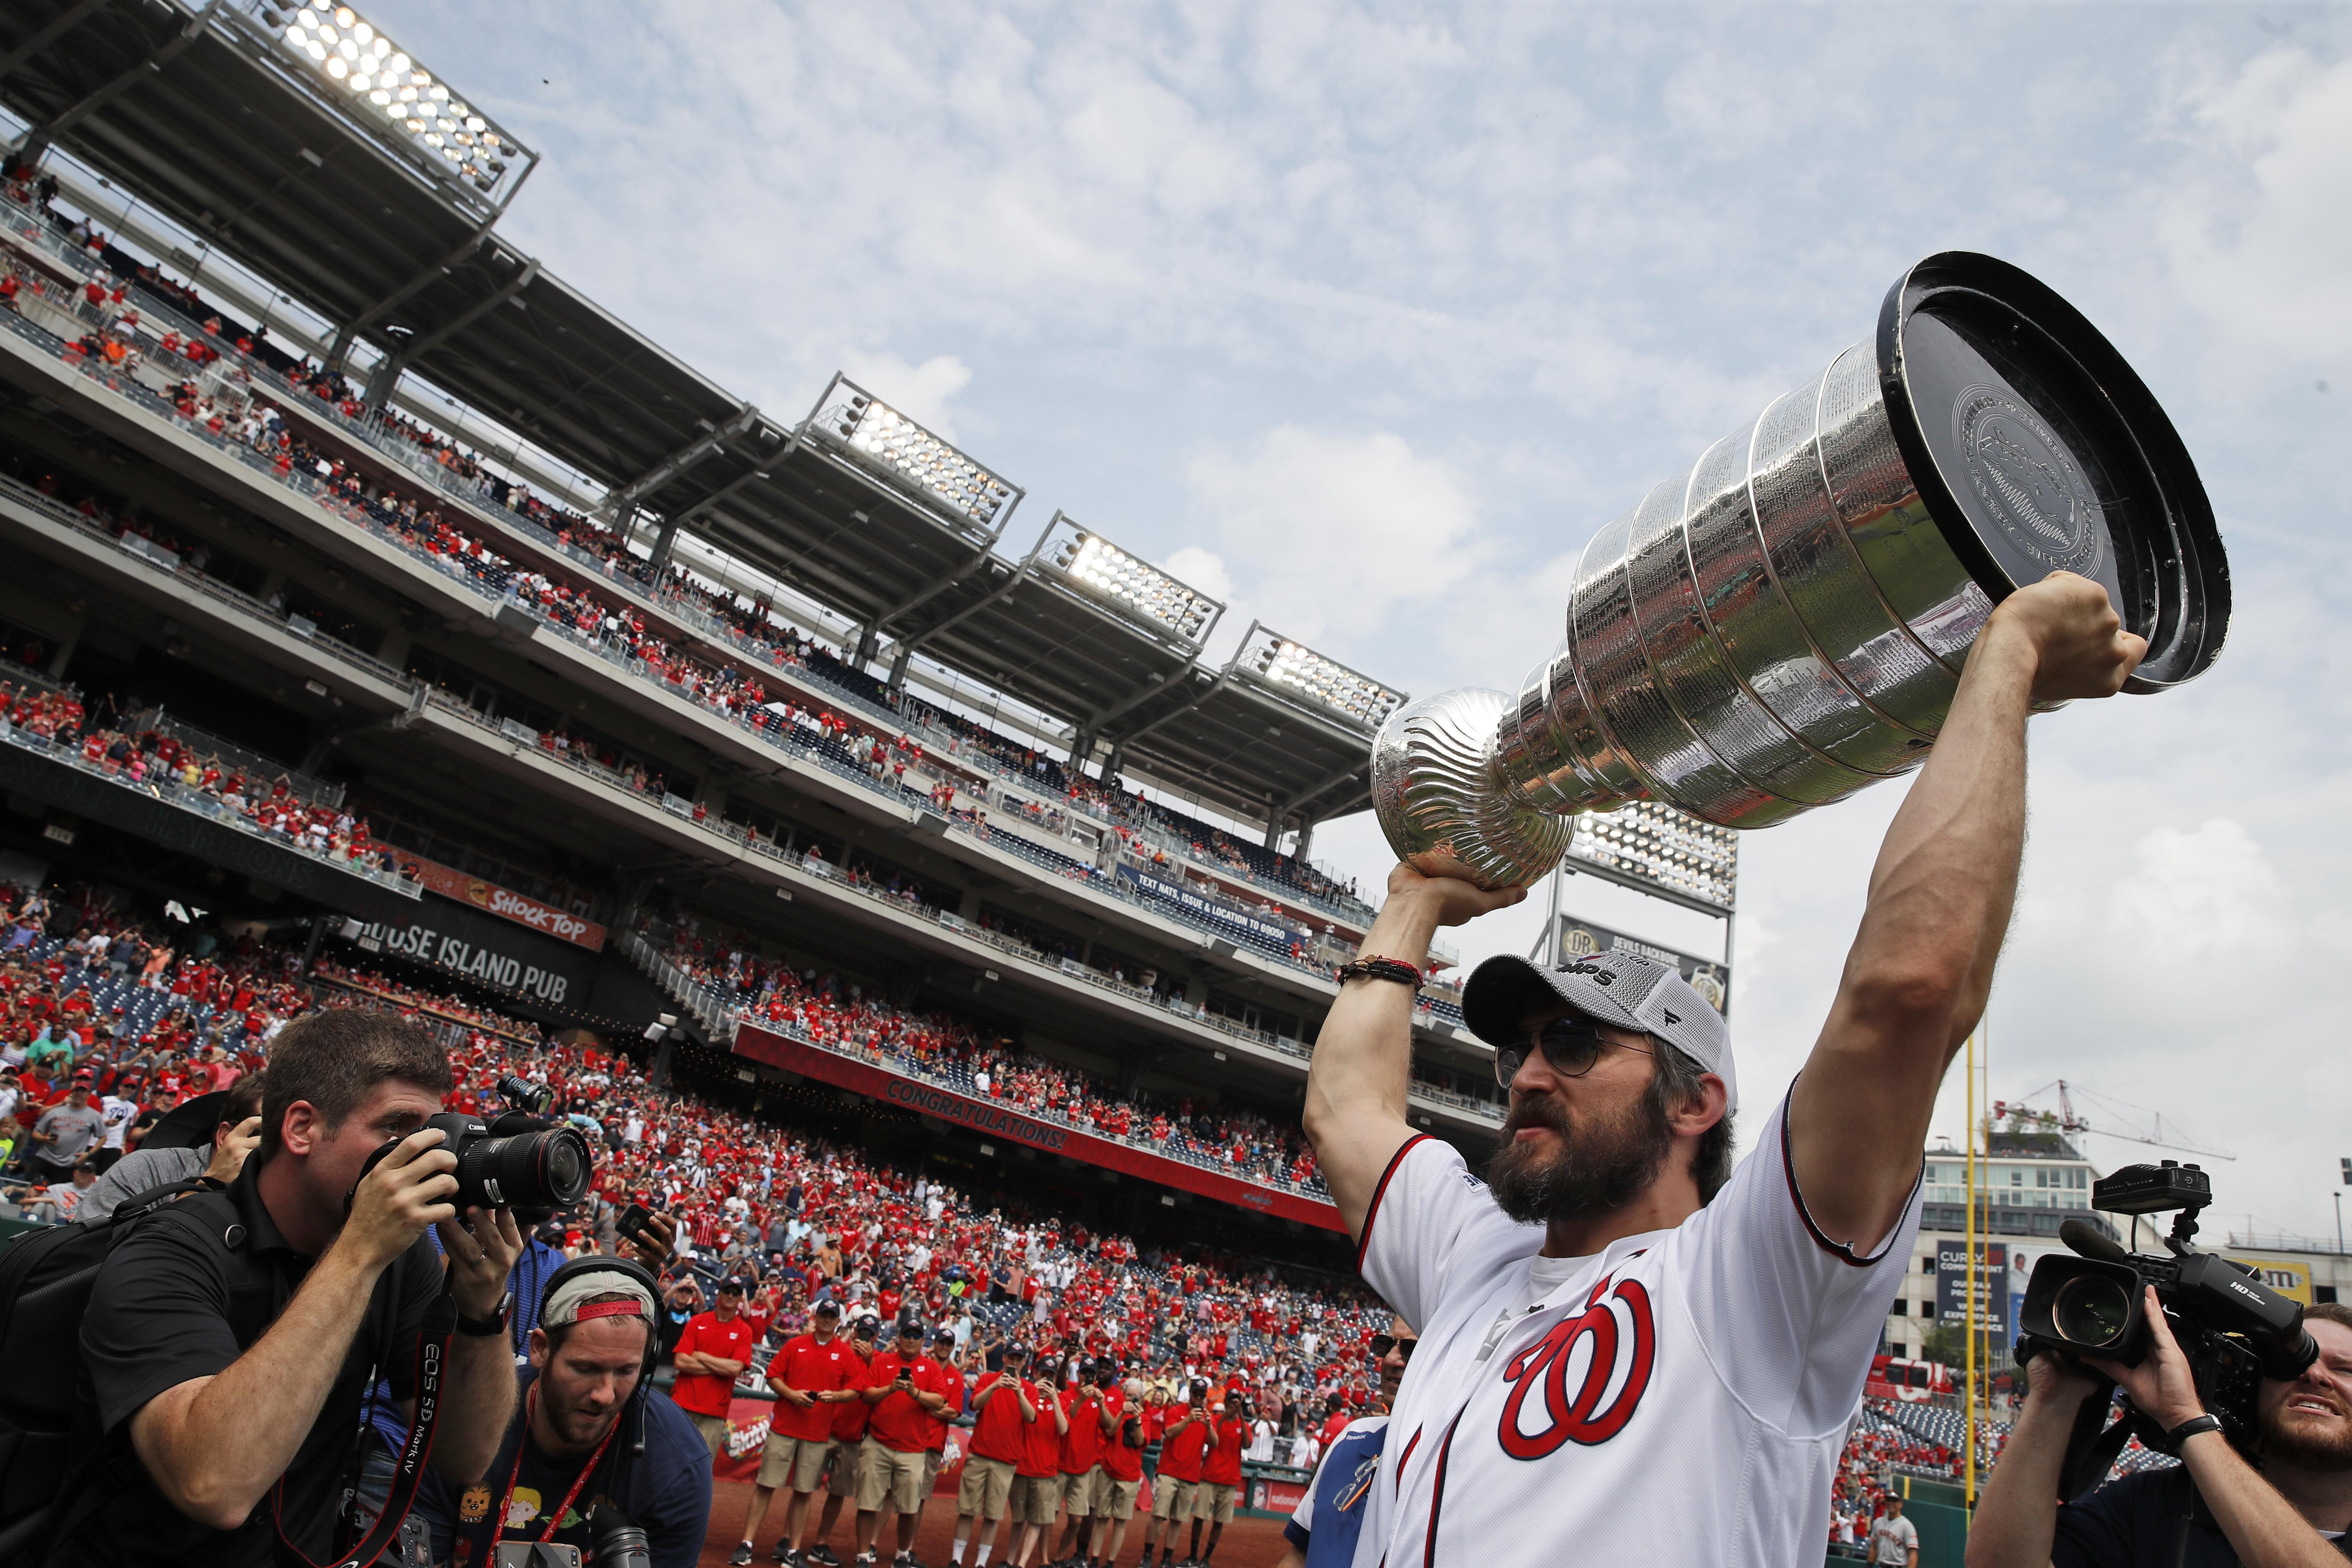 658eddc1621 Stanley Cup party rolls on for first-time champion Capitals